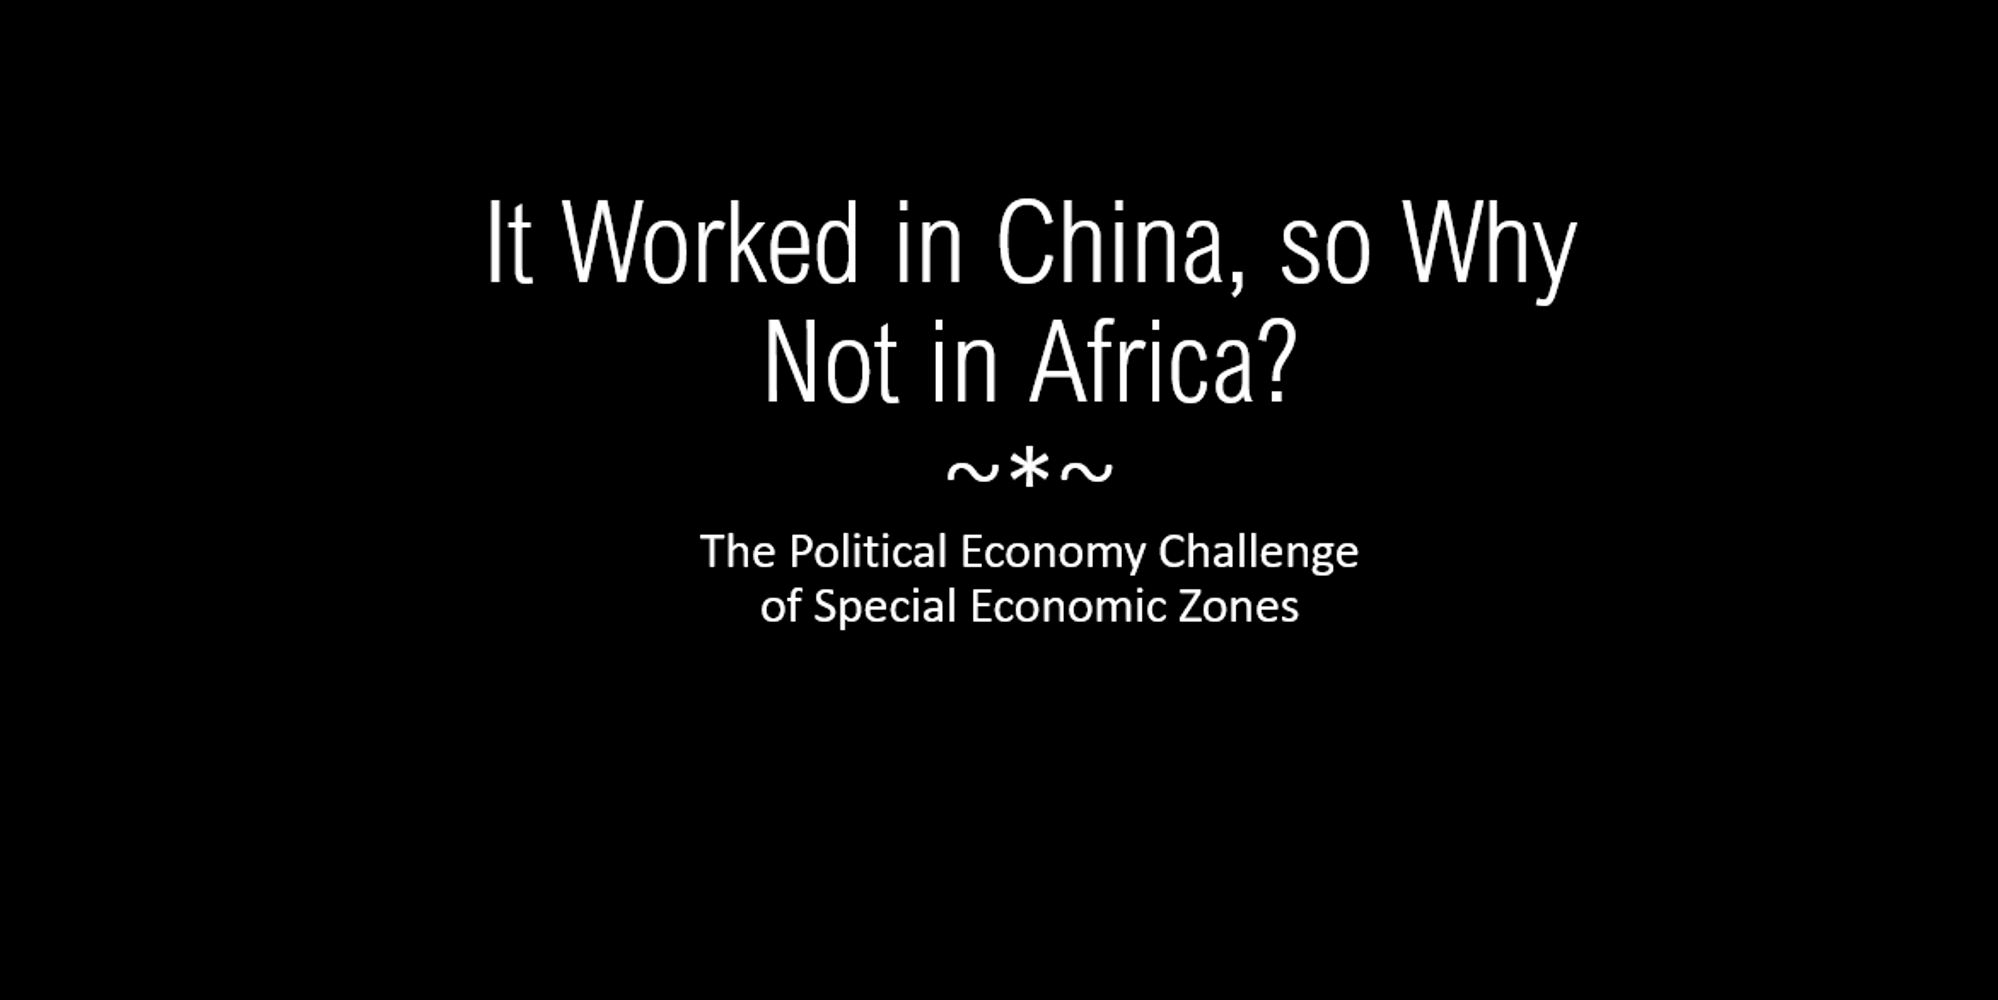 """Introduction for """"It worked in China, so why not in Africa? The political economy challenge of Special Economic Zones"""" content on the site for Lotta Moberg, PhD, CFA."""